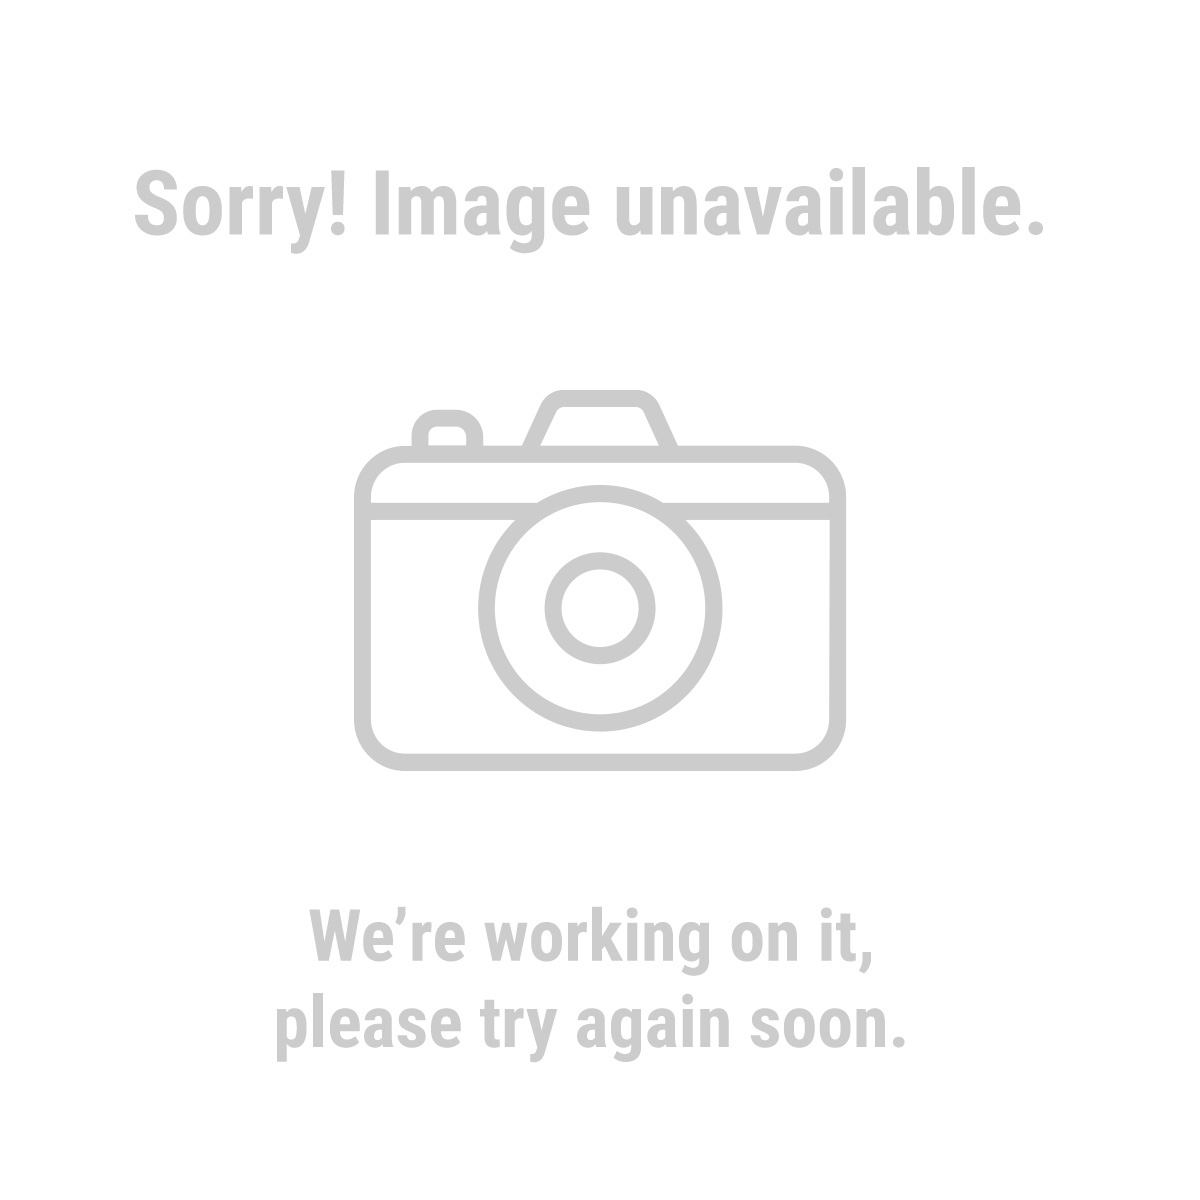 Pittsburgh Professional 67990 High Visibility 1/2 in. Drive SAE Socket Set 16 Pc